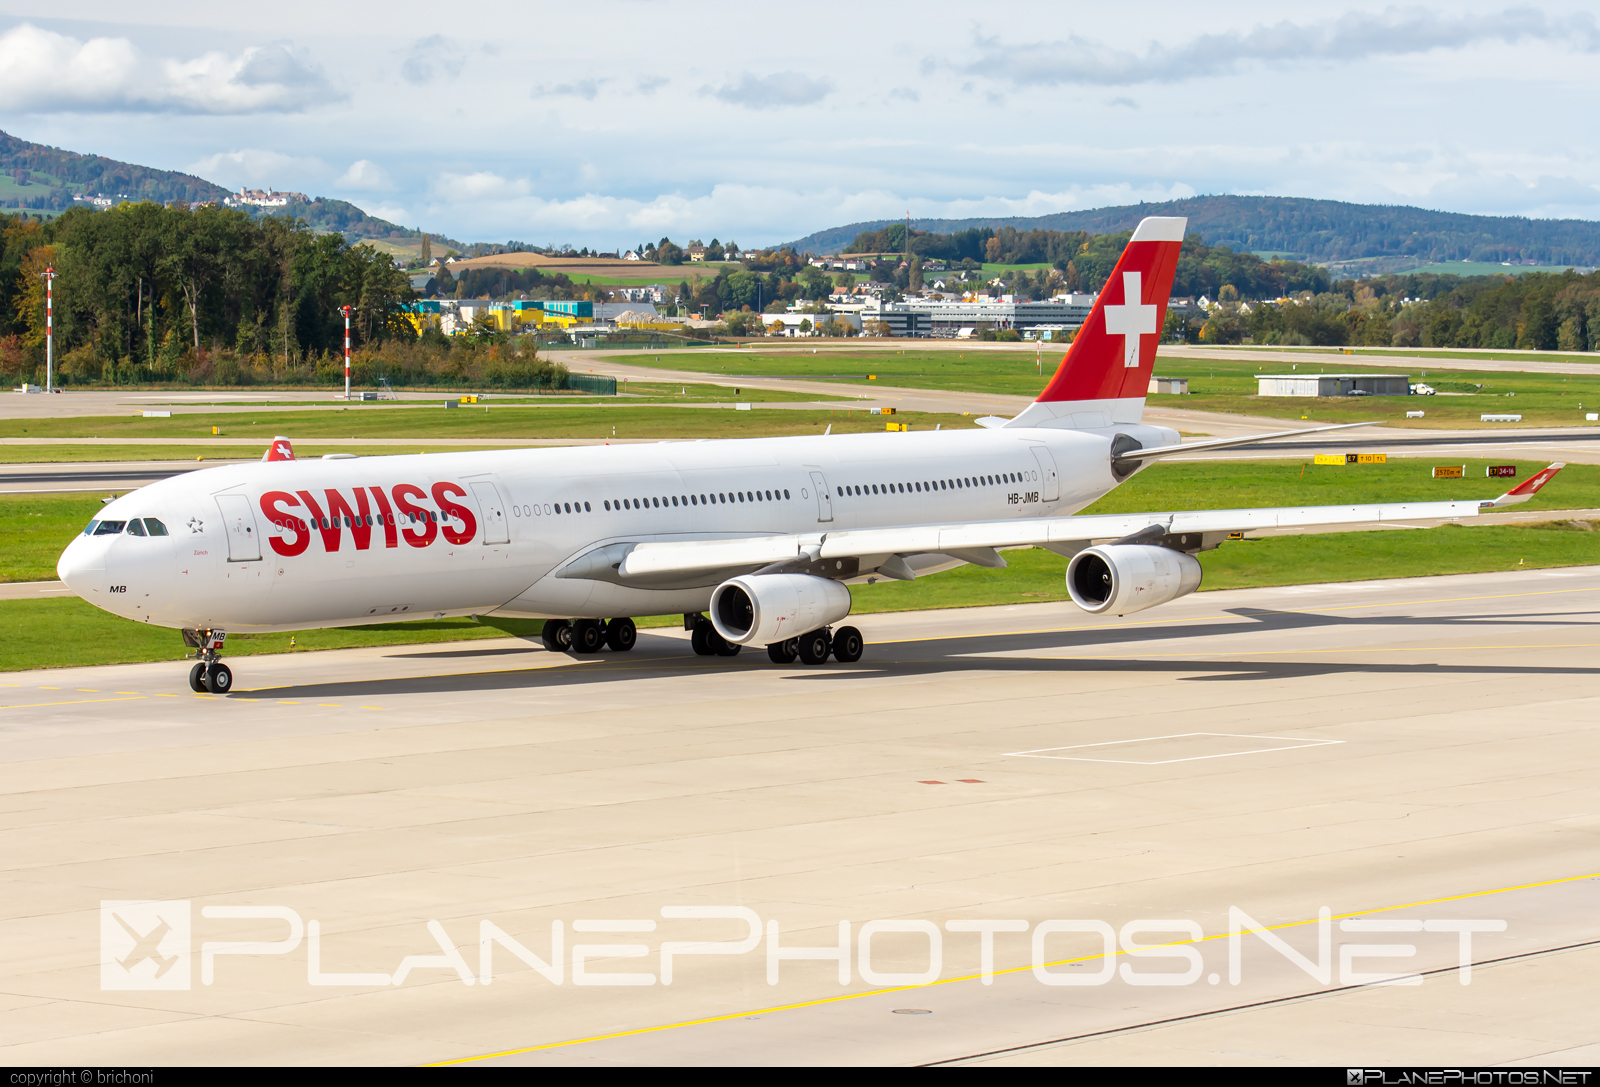 Airbus A340-313 - HB-JMB operated by Swiss International Air Lines #a340 #a340family #airbus #airbus340 #swiss #swissairlines